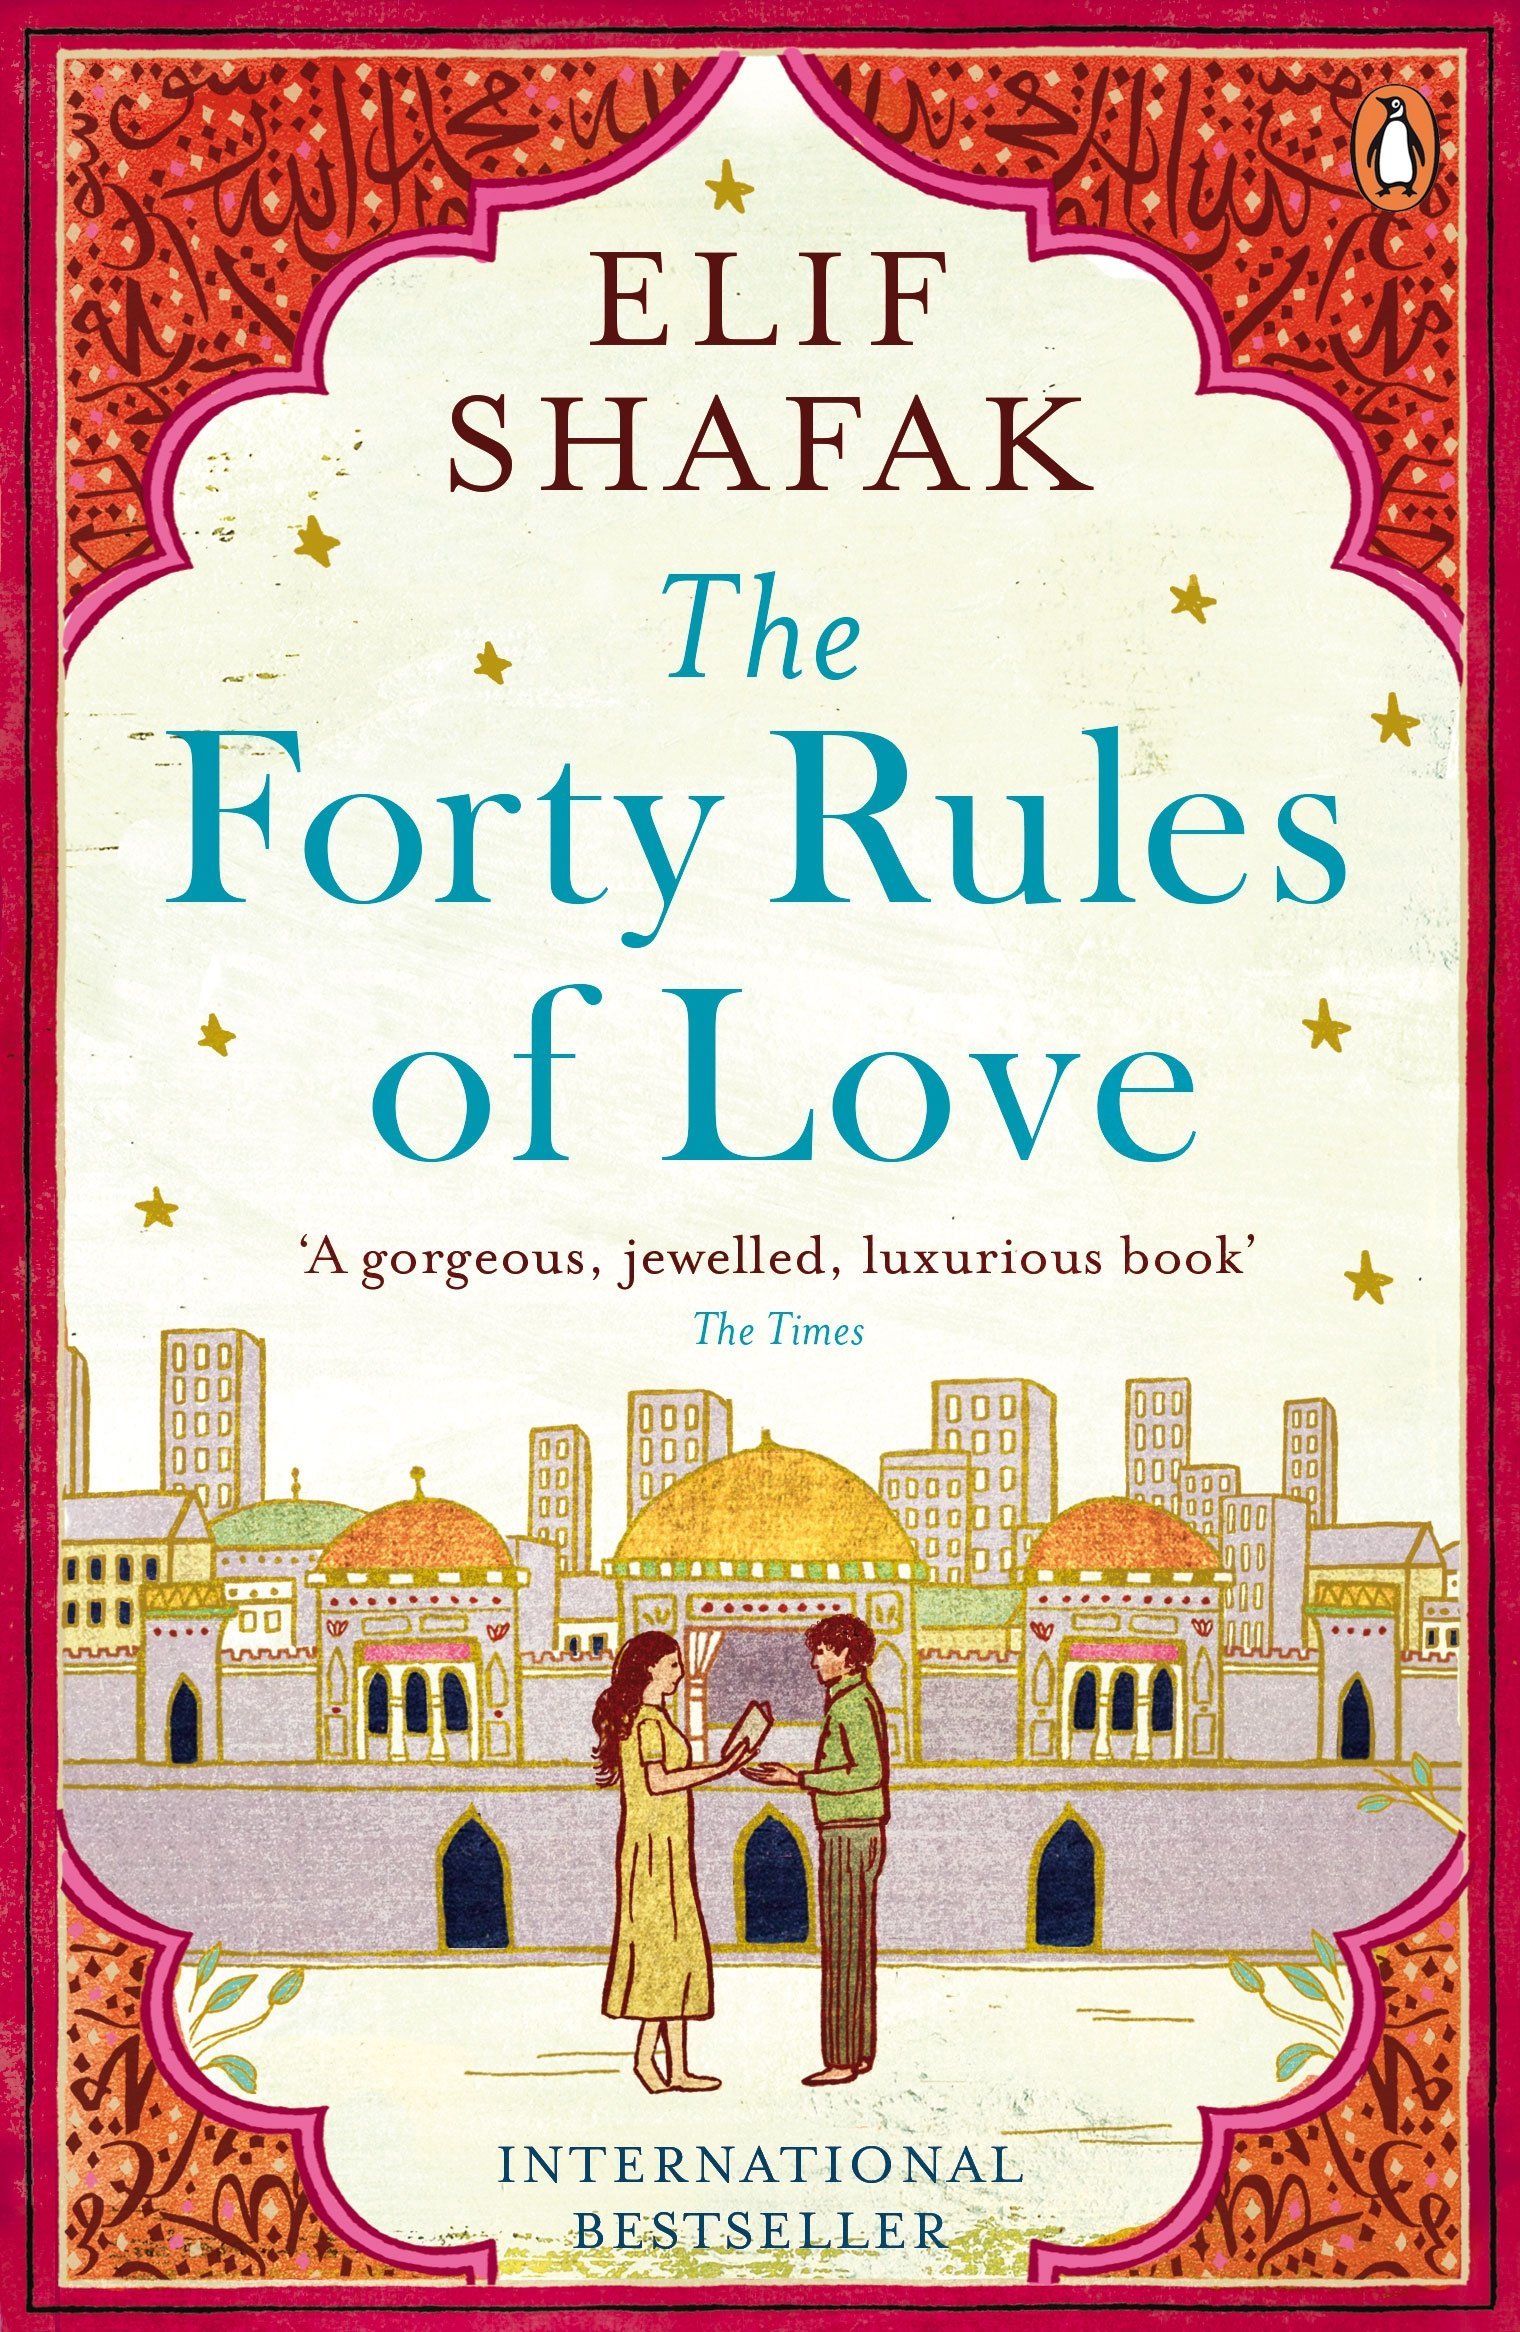 The Forty Rules of Love by Elif Shafak - Everyone needs a tear-jerking love story on their bookshelf. Elif Shafak's, The Forty Rules Of Love. A stunning tale of the Sufi mystic, Rumi, and the friendship that led him to become the greatest poet of our time, told through the eyes of a housewife.